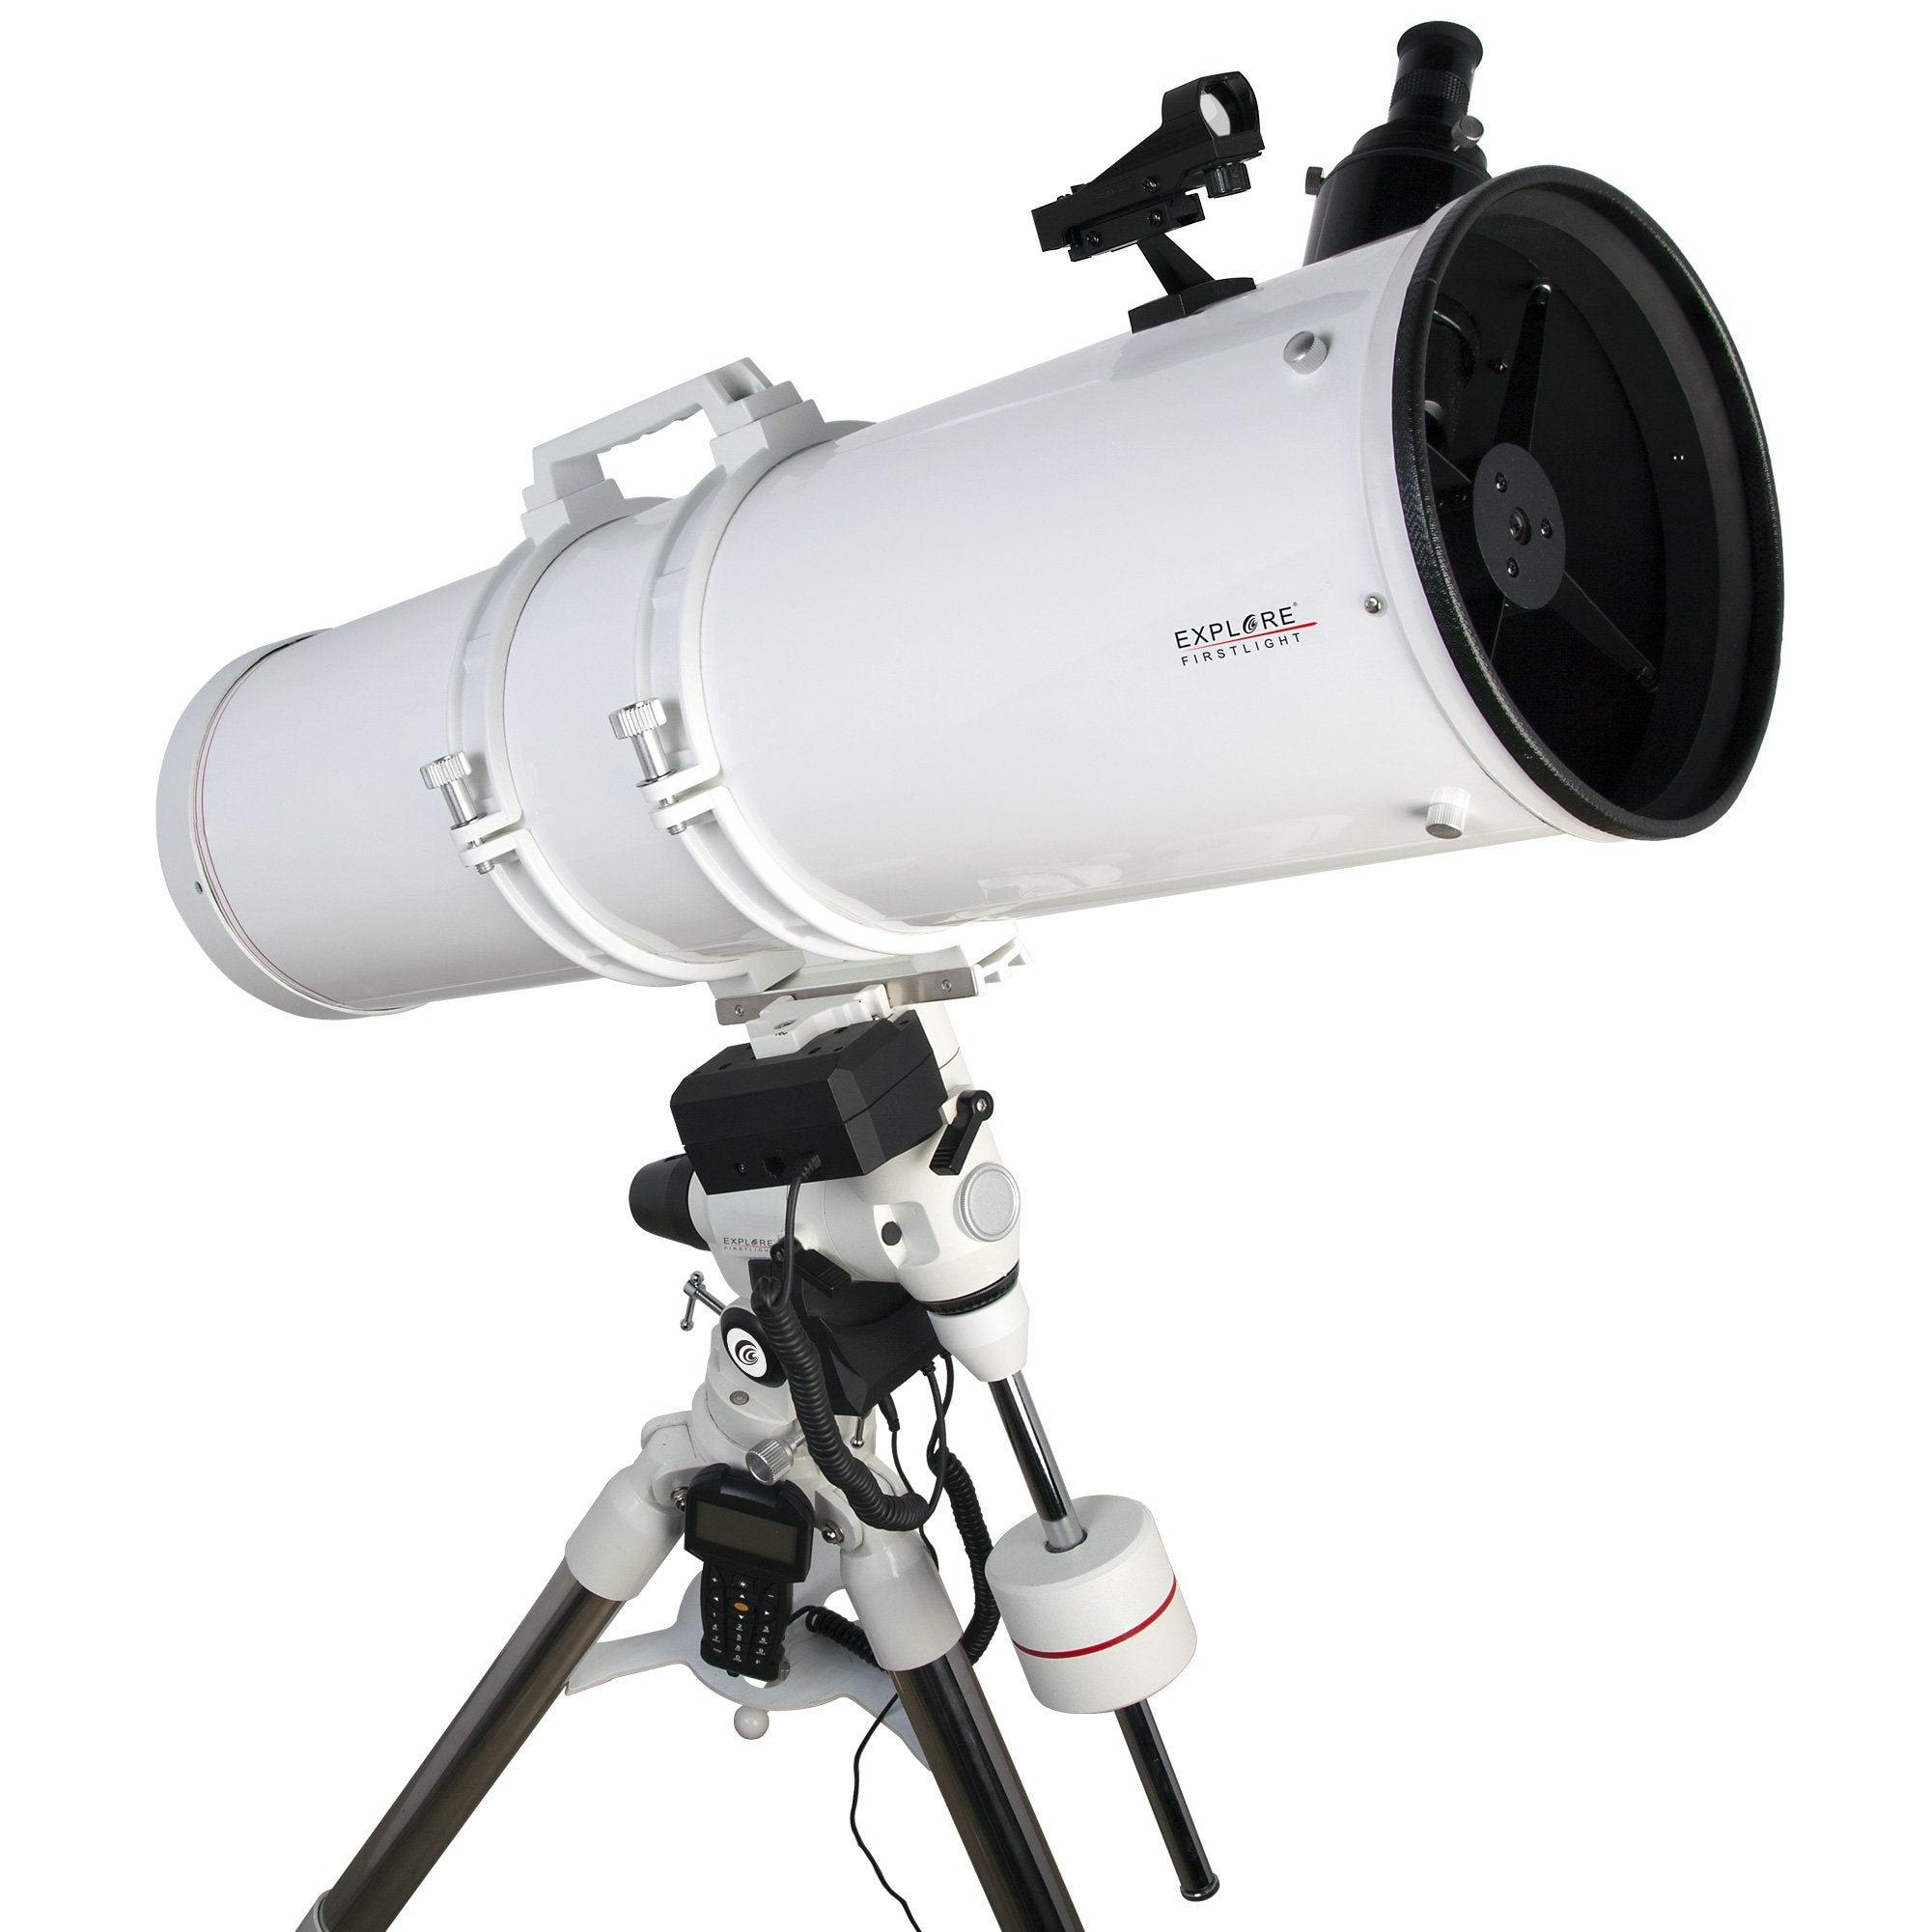 Explore FirstLight 203mm Newtonian w/ EXOS2GT GoTo Mount